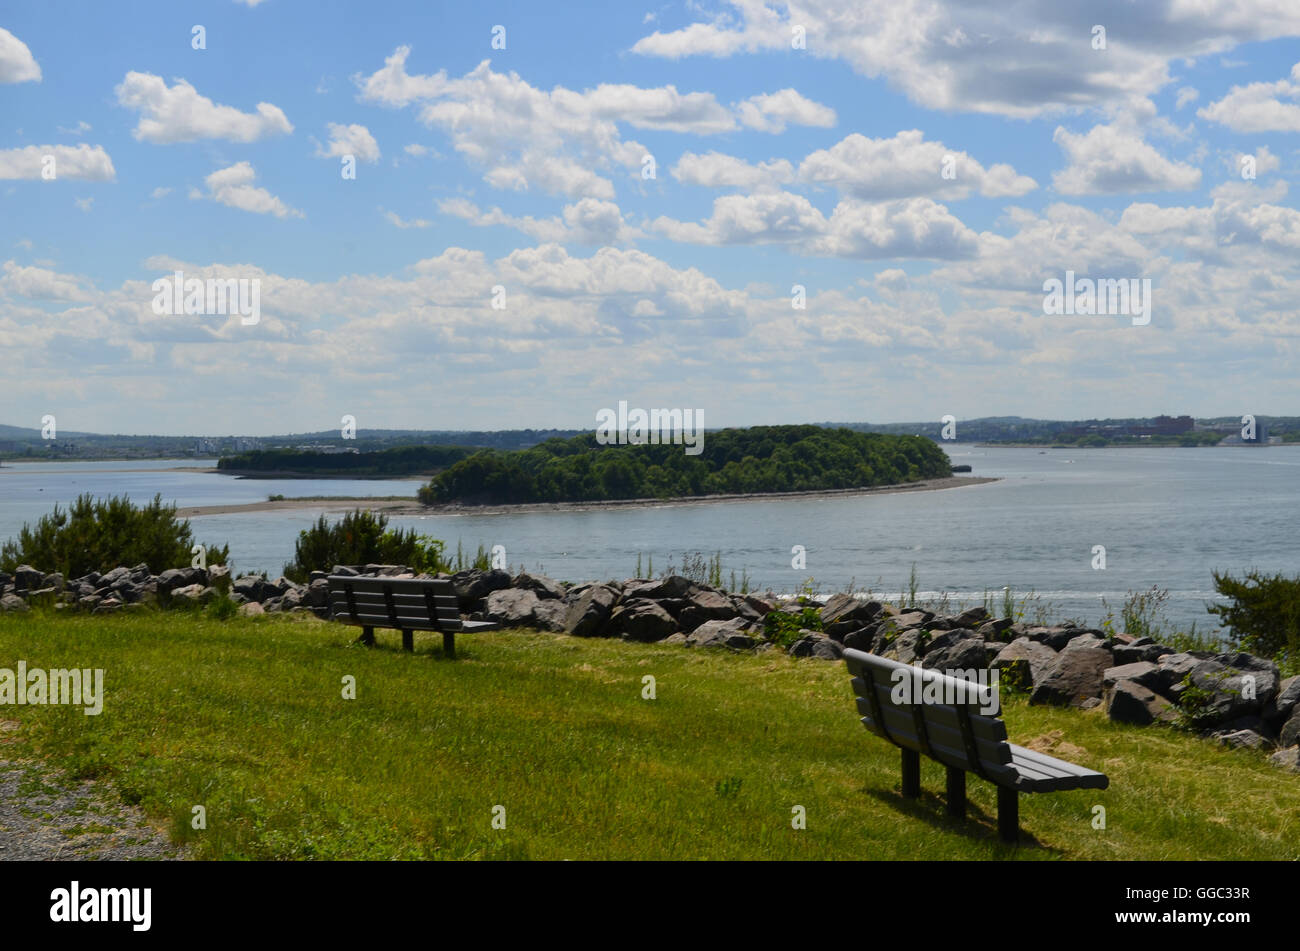 Amazing views from Spectacle island located in Boston Harbor. - Stock Image